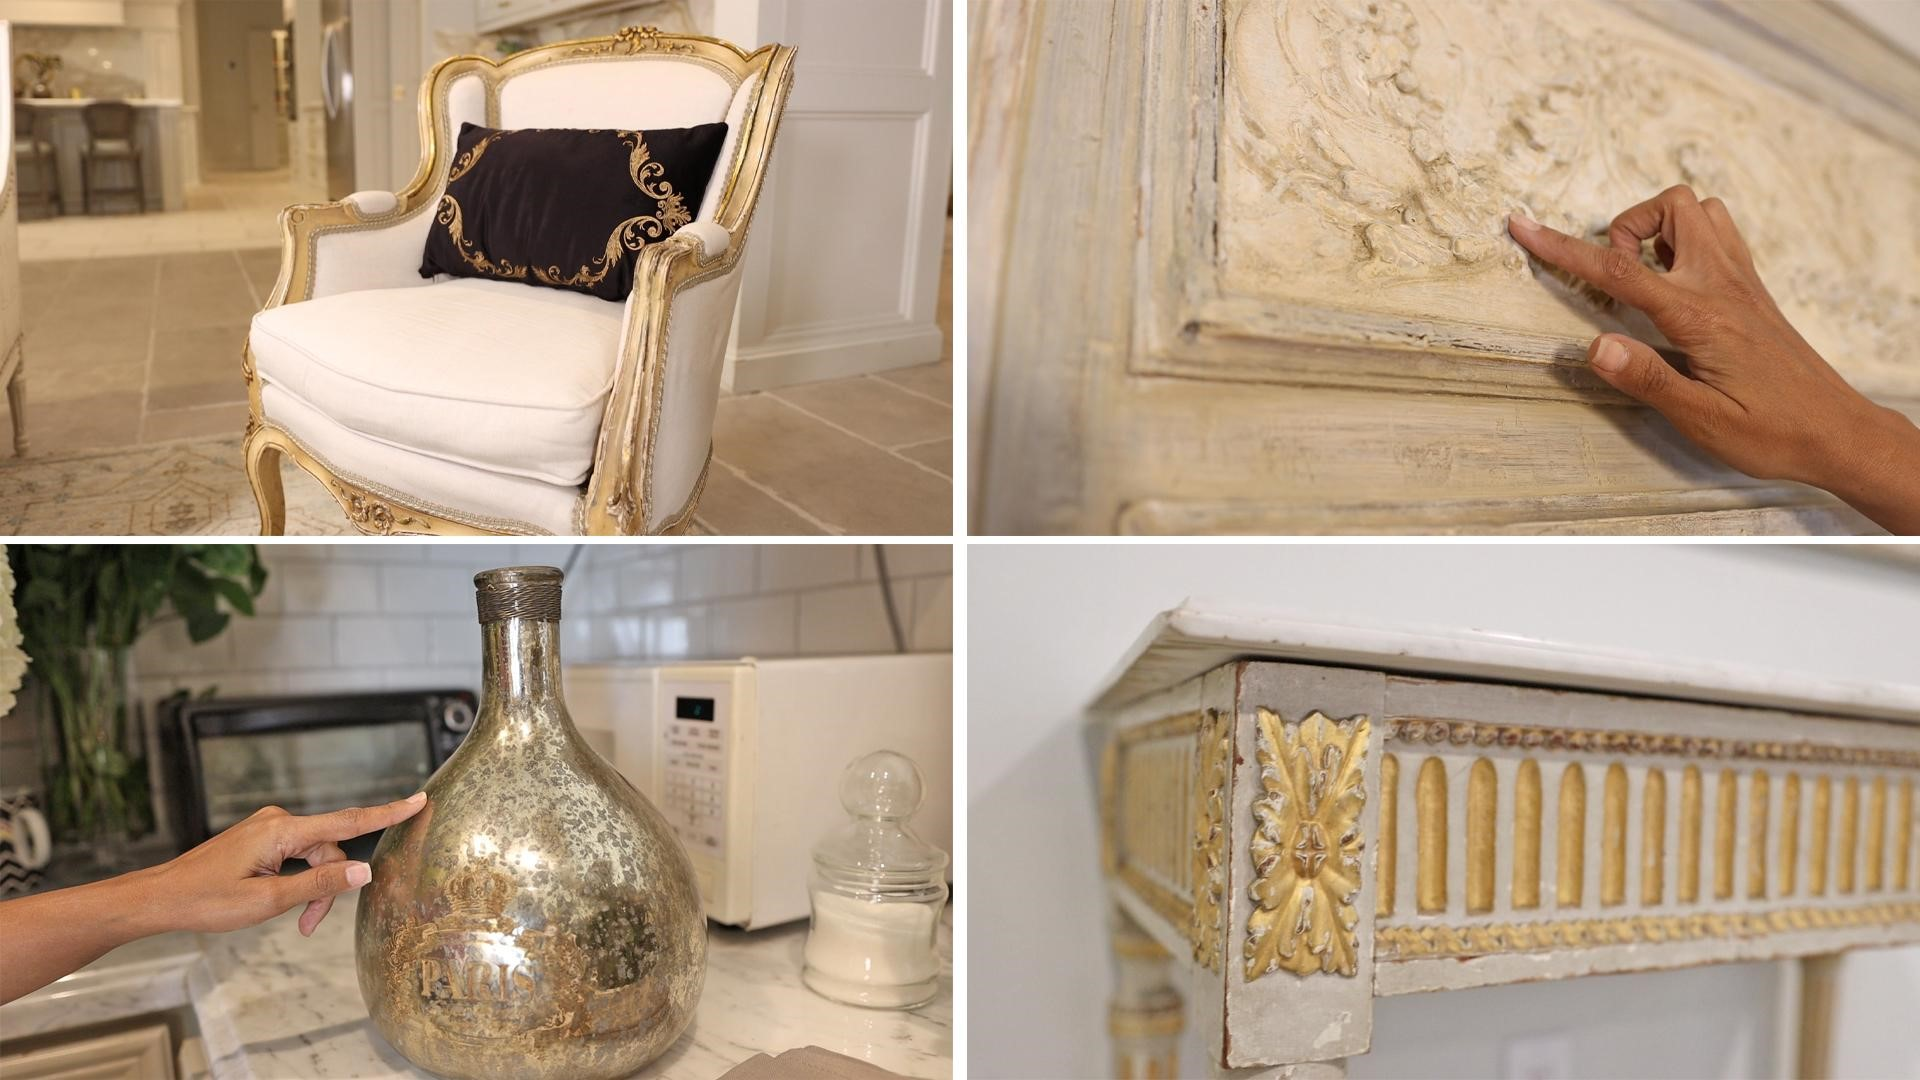 Look for gold detailing or warm finishes in your staple furniture and French country decor to make adding glam items more cohesive in your home.